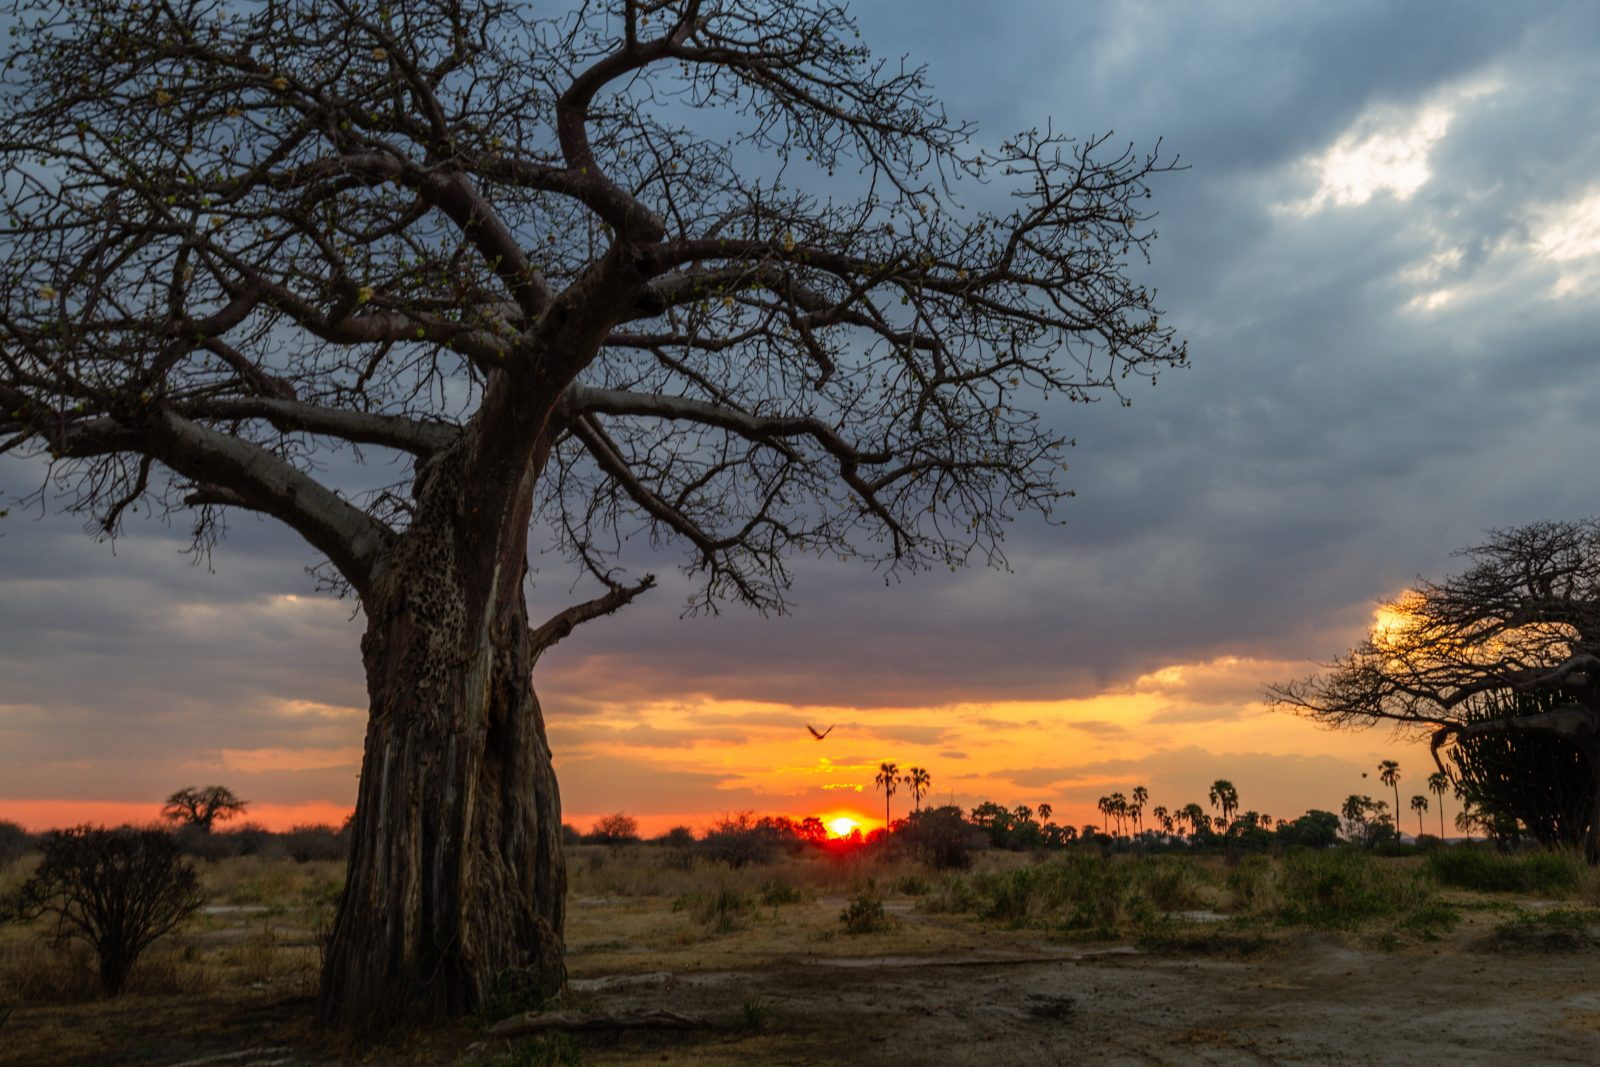 Primeval Sunset in Ruaha National Park